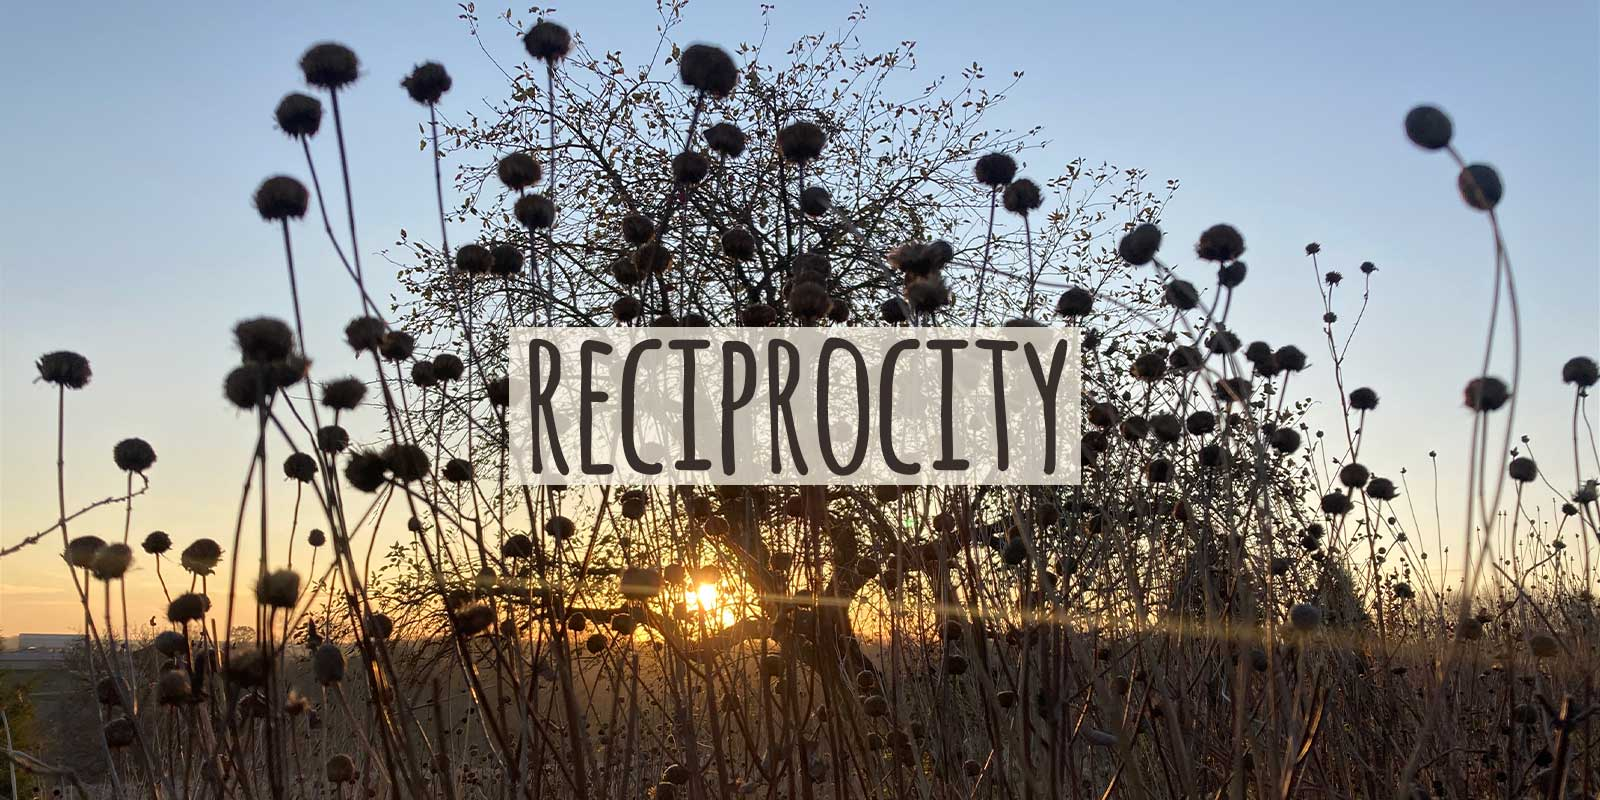 Inspired by Grassroots Reciprocity